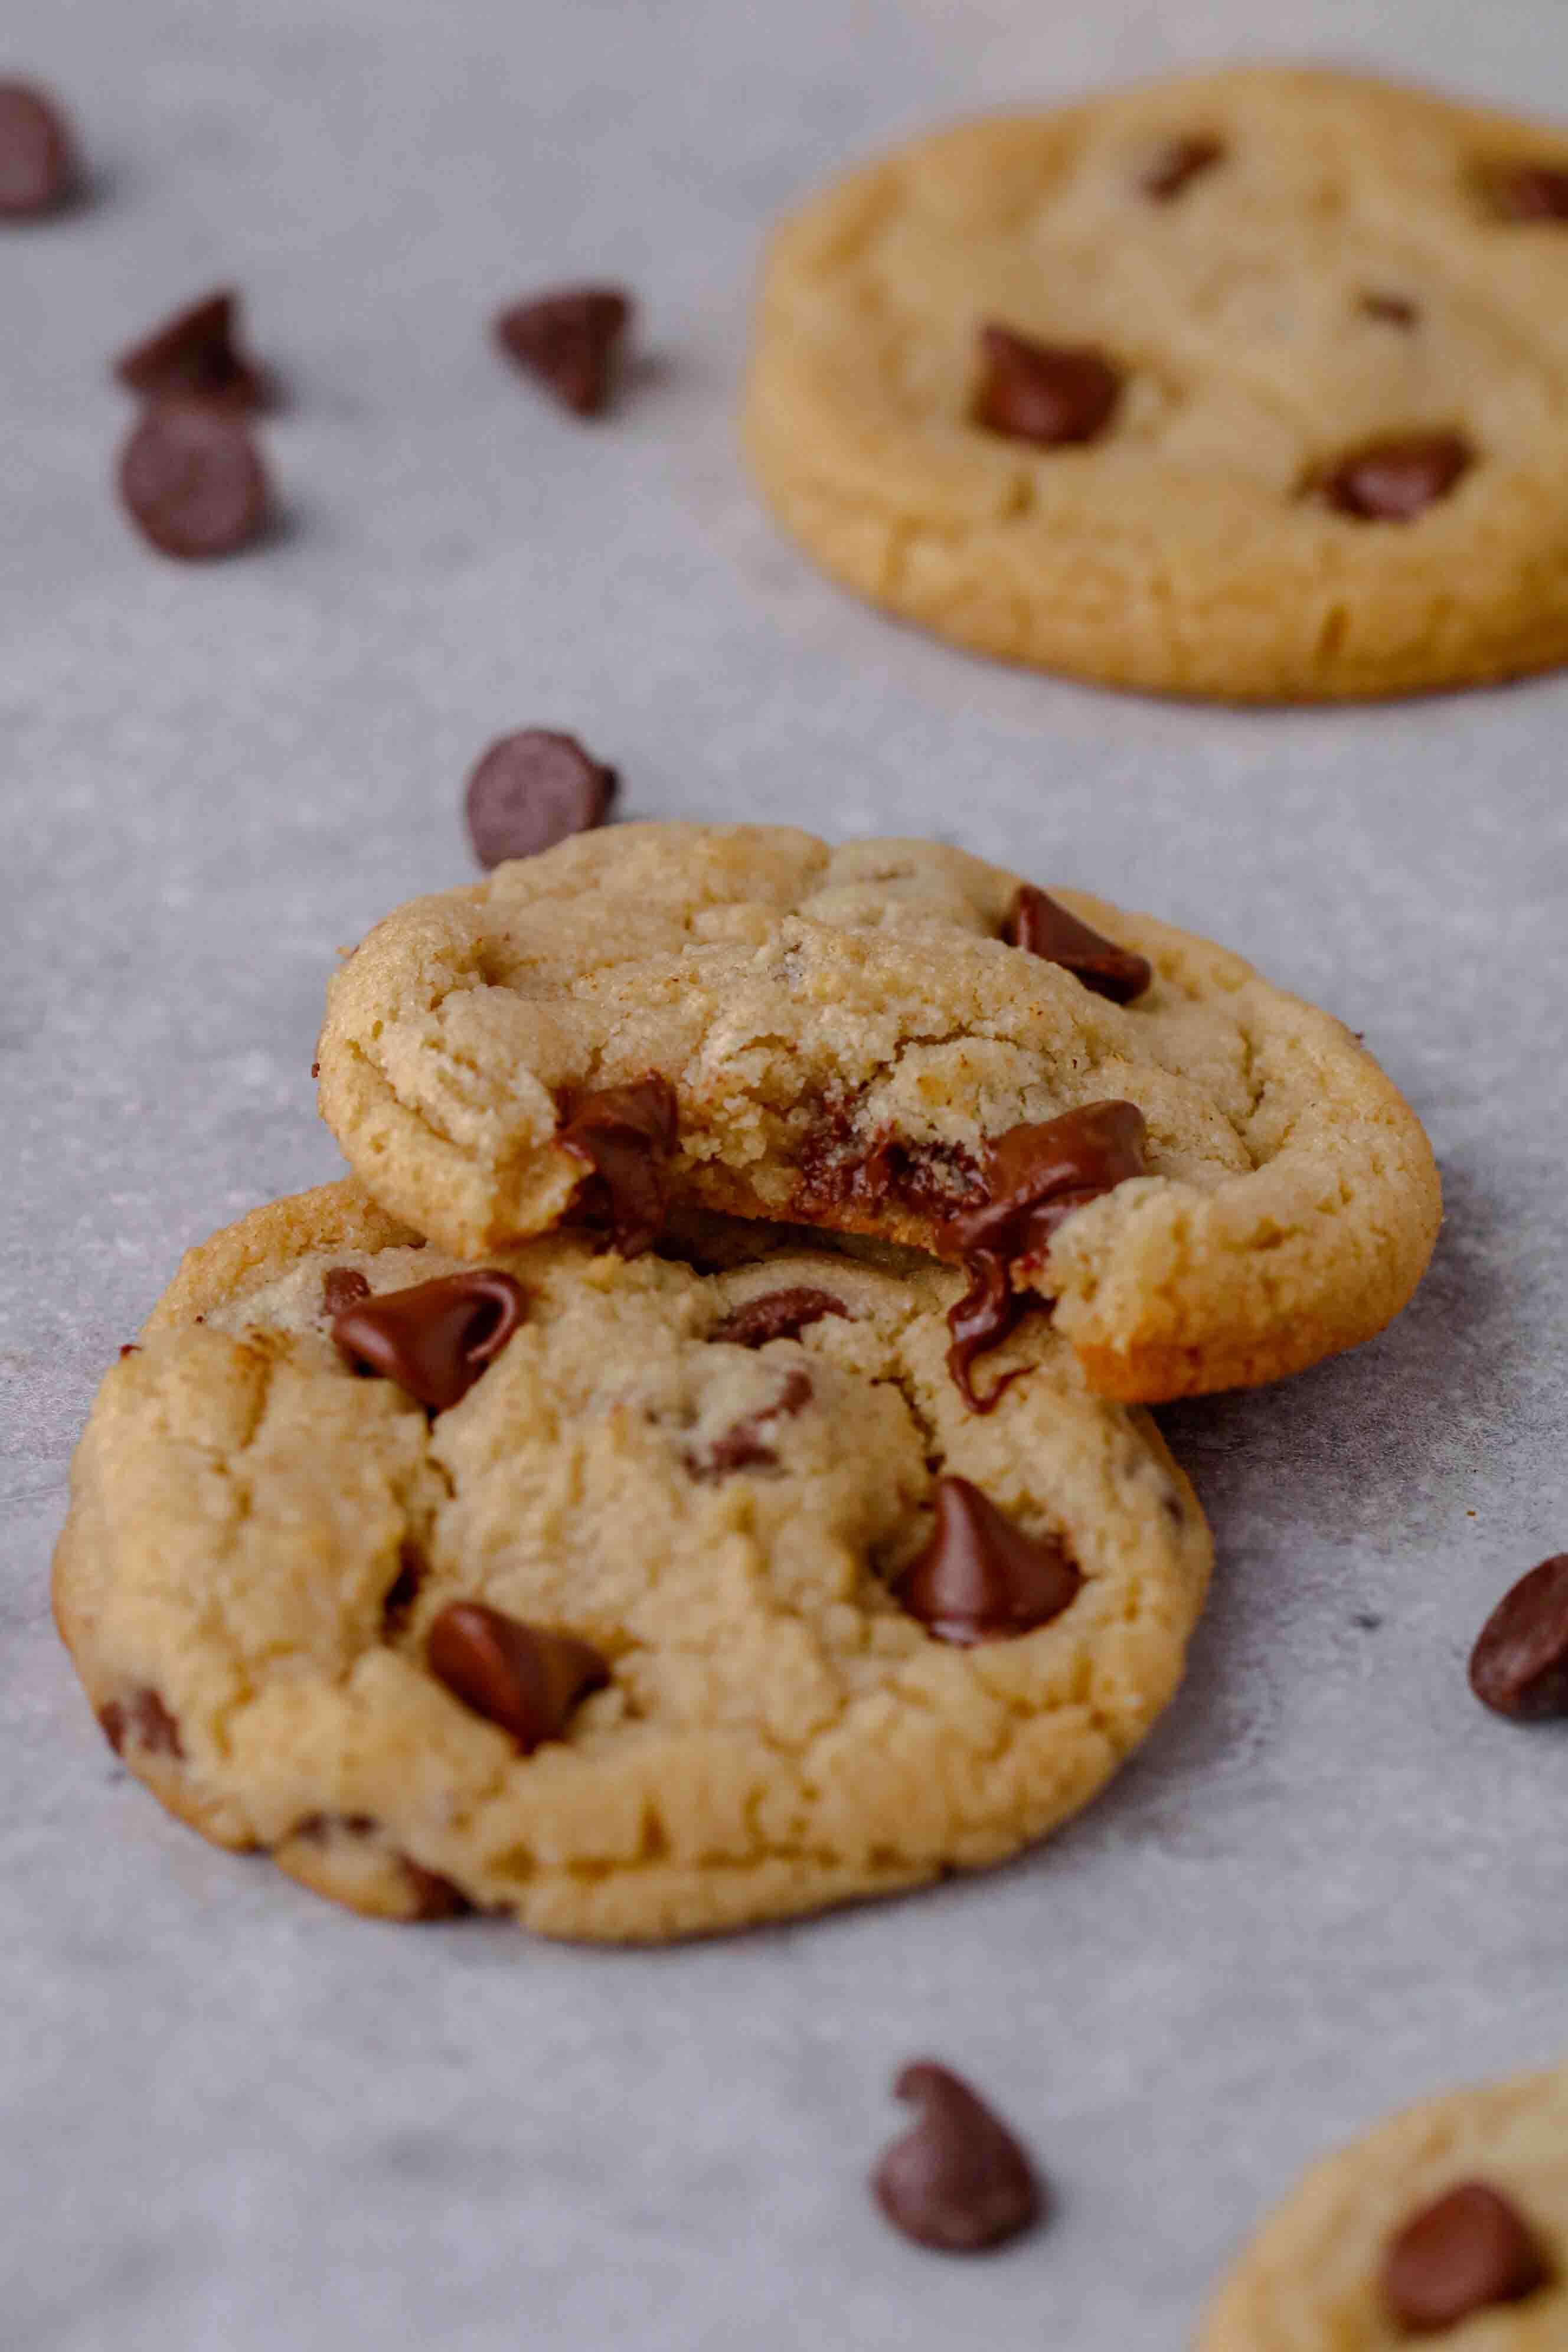 Chocolate chip cookie dough with almond flour